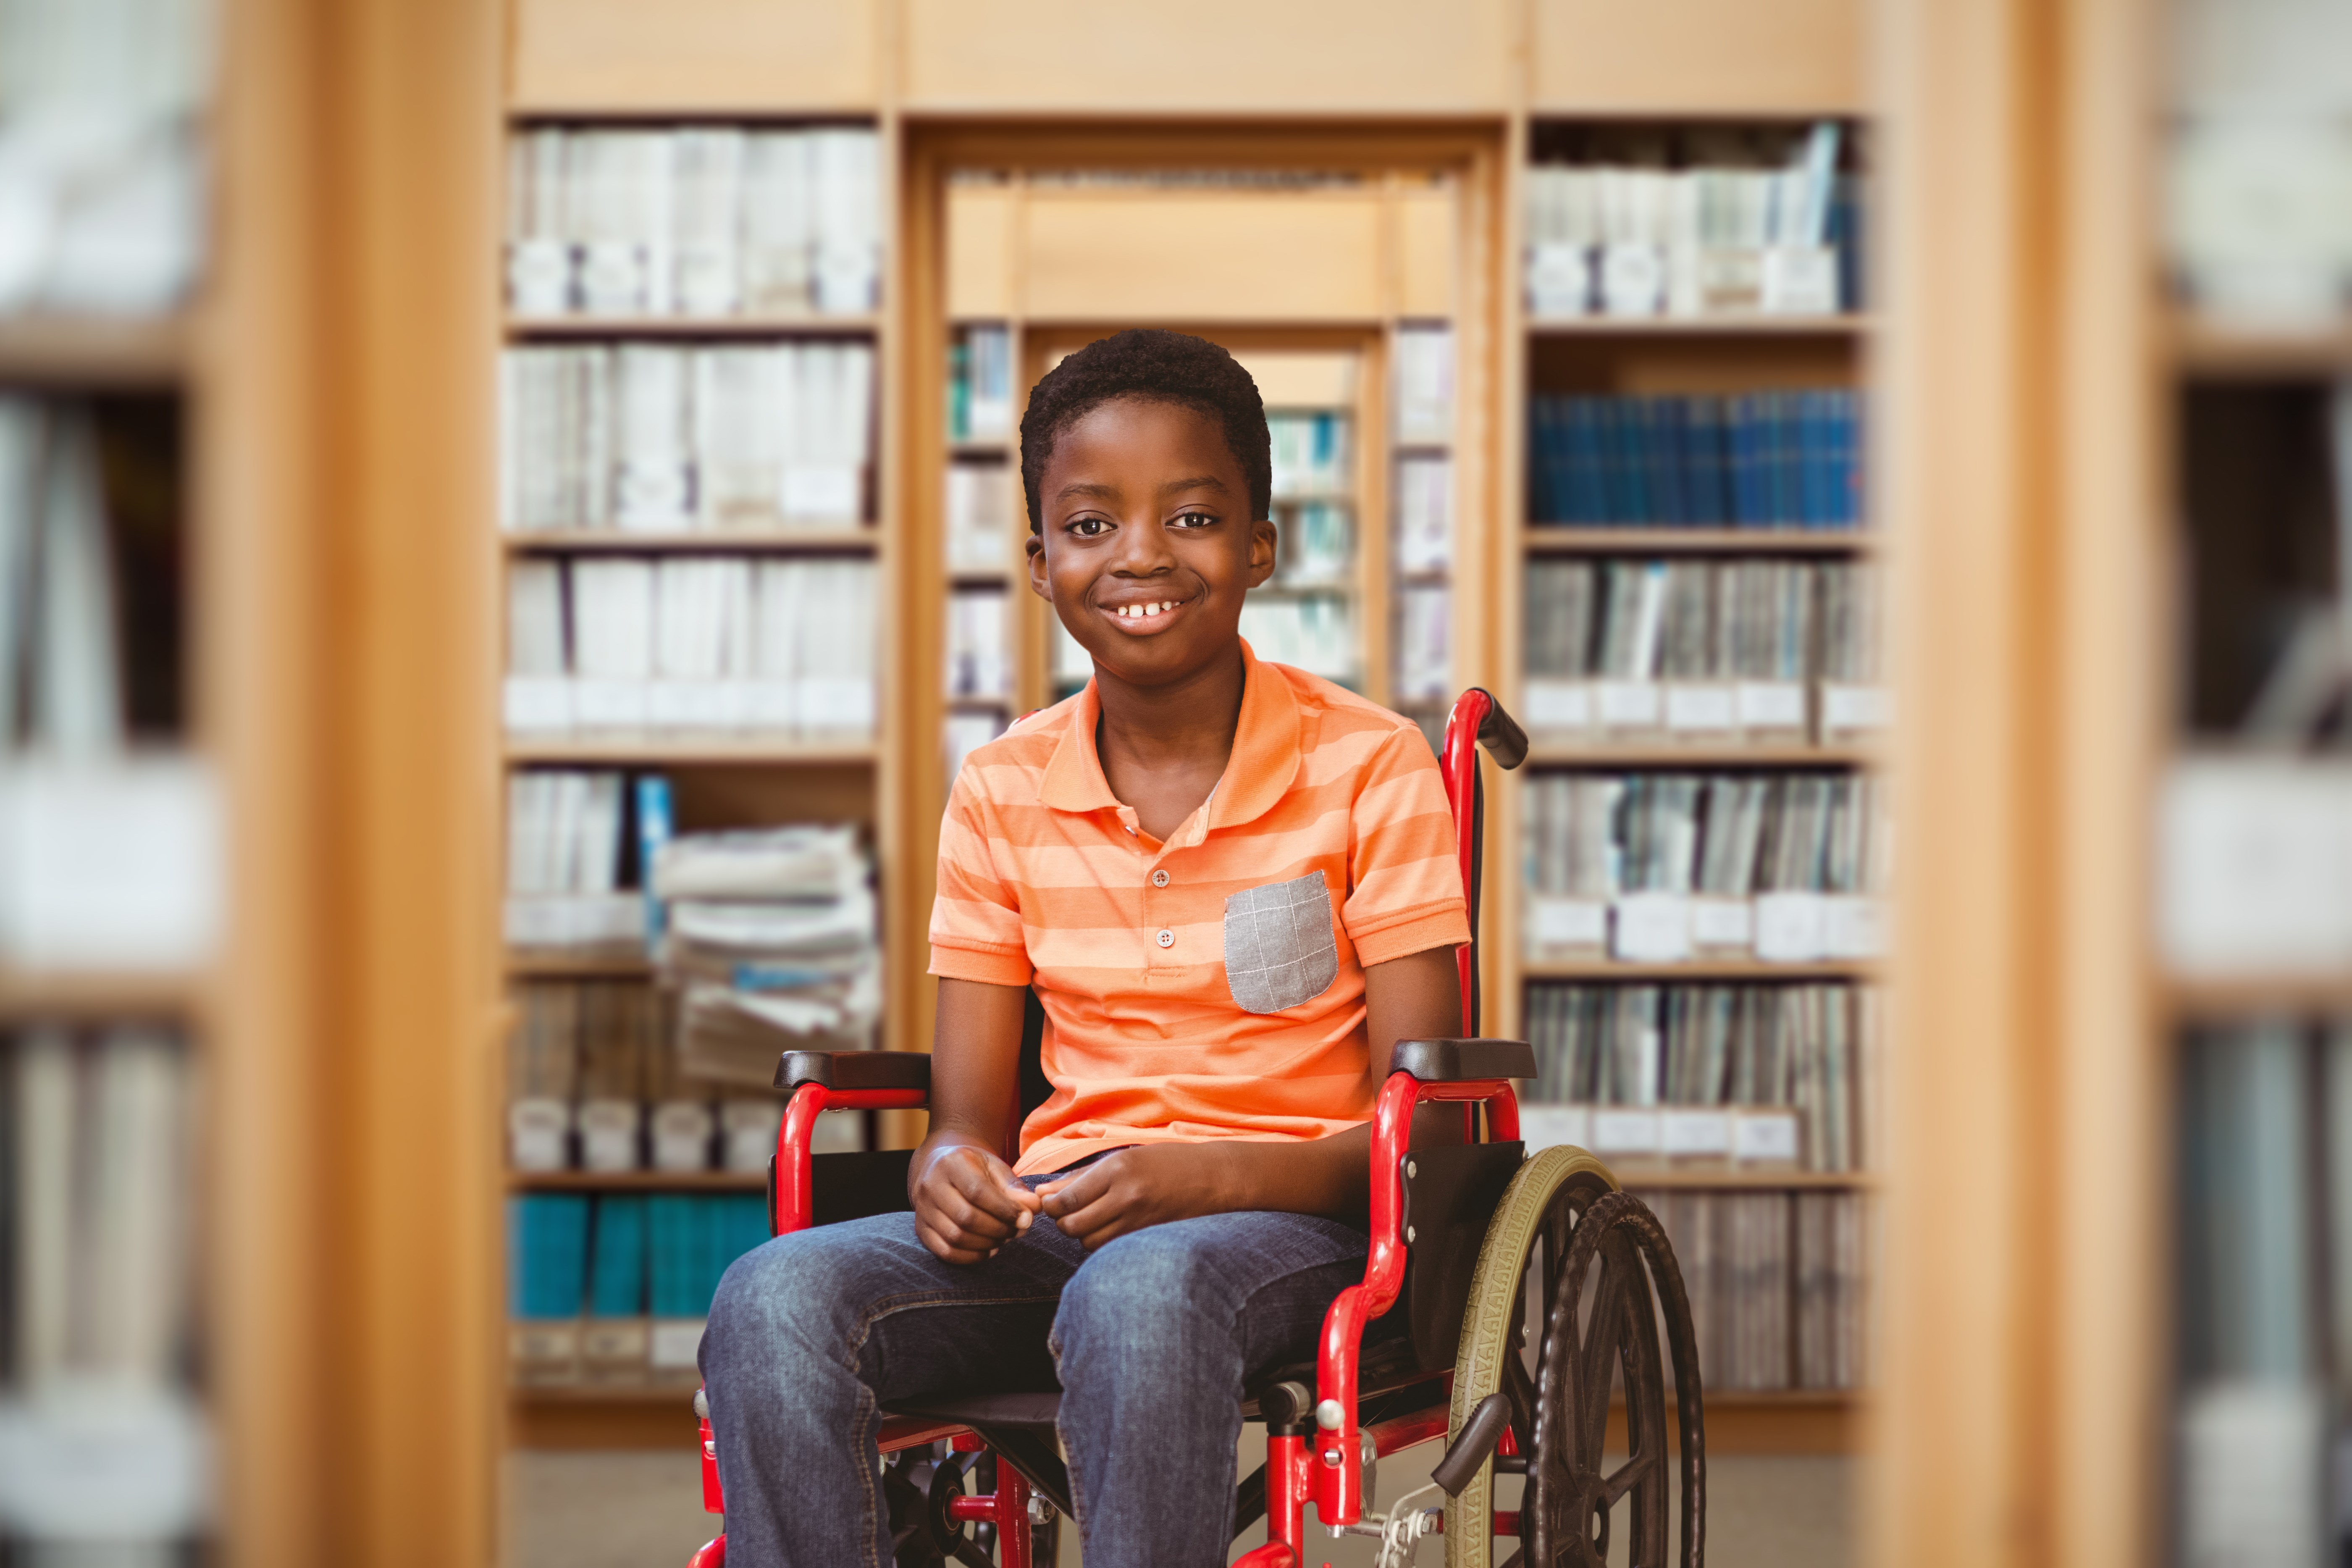 Young boy sitting in a wheel chair smiling at the camera